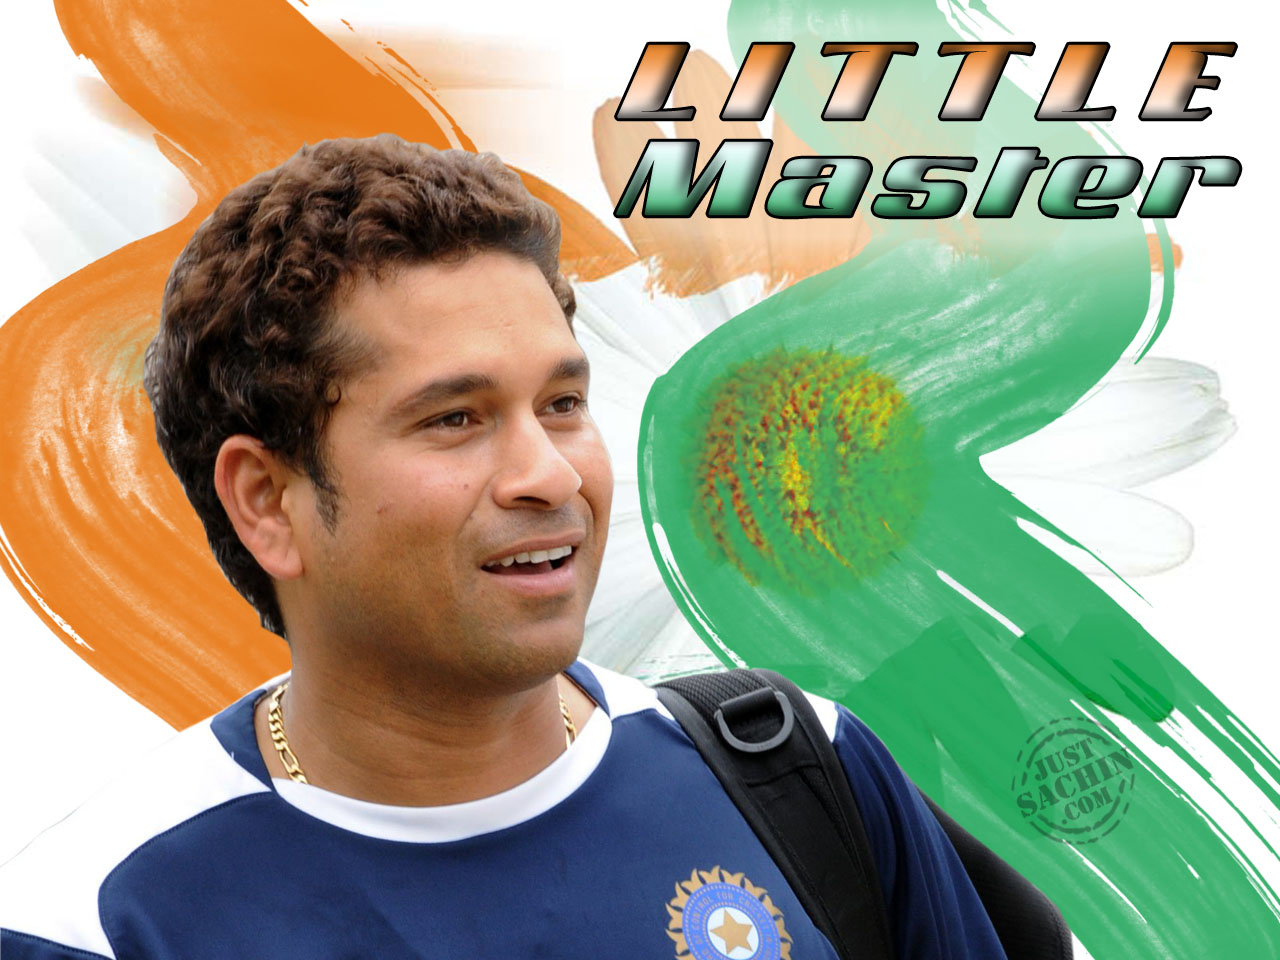 http://3.bp.blogspot.com/-F_IcGGfxD9o/TyjqEwVuoNI/AAAAAAAAAD0/qTHPKyo319M/s1600/Sachin+Tendulkar+Free+High+Quality+Wallpapers+pics,+download.jpg